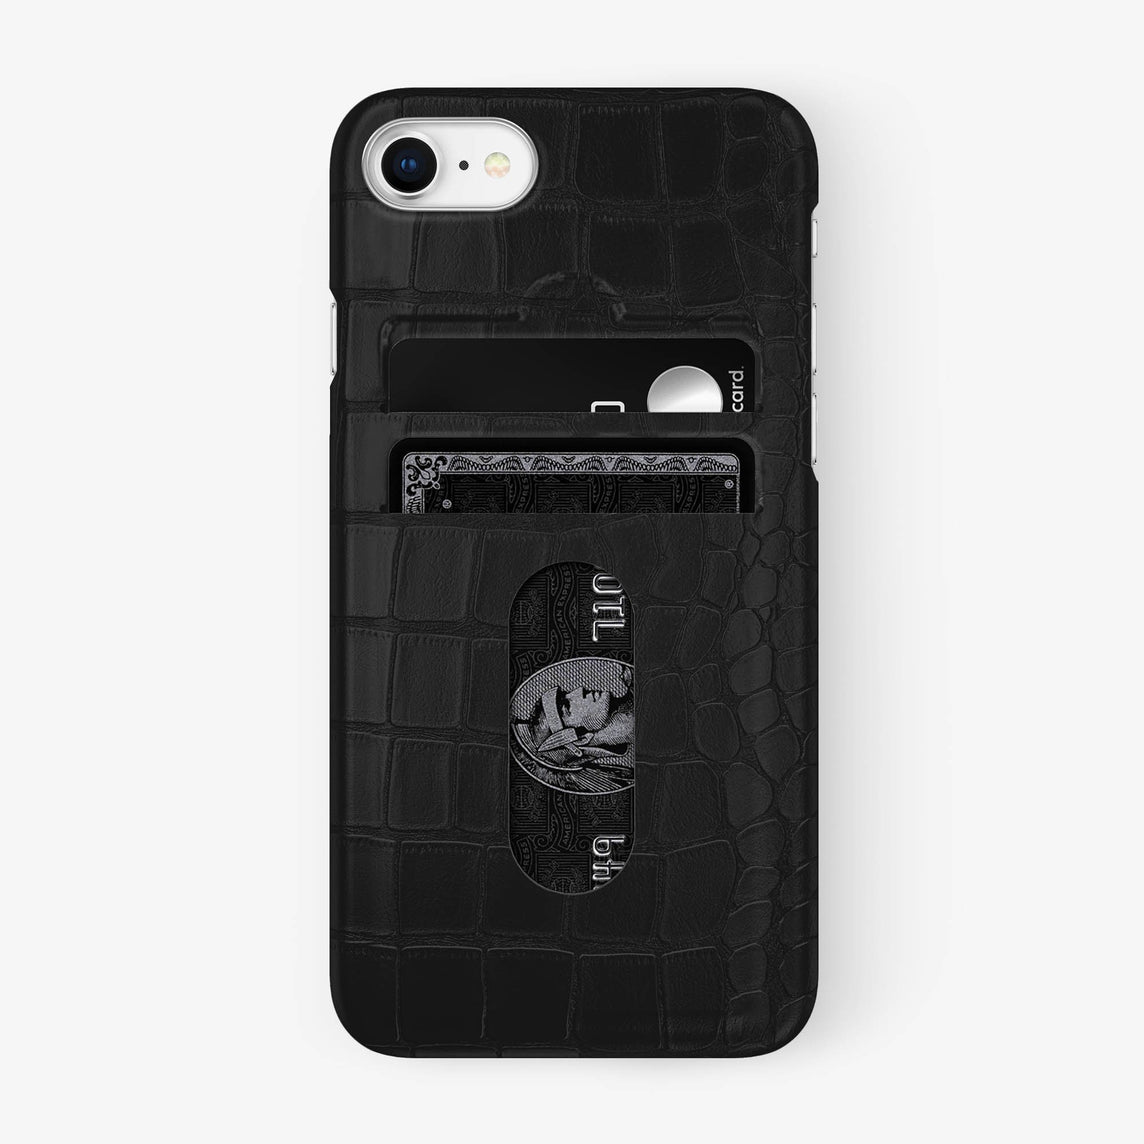 Alligator Card Holder Case iPhone 7/8 | Phantom Black - Stainless Steel